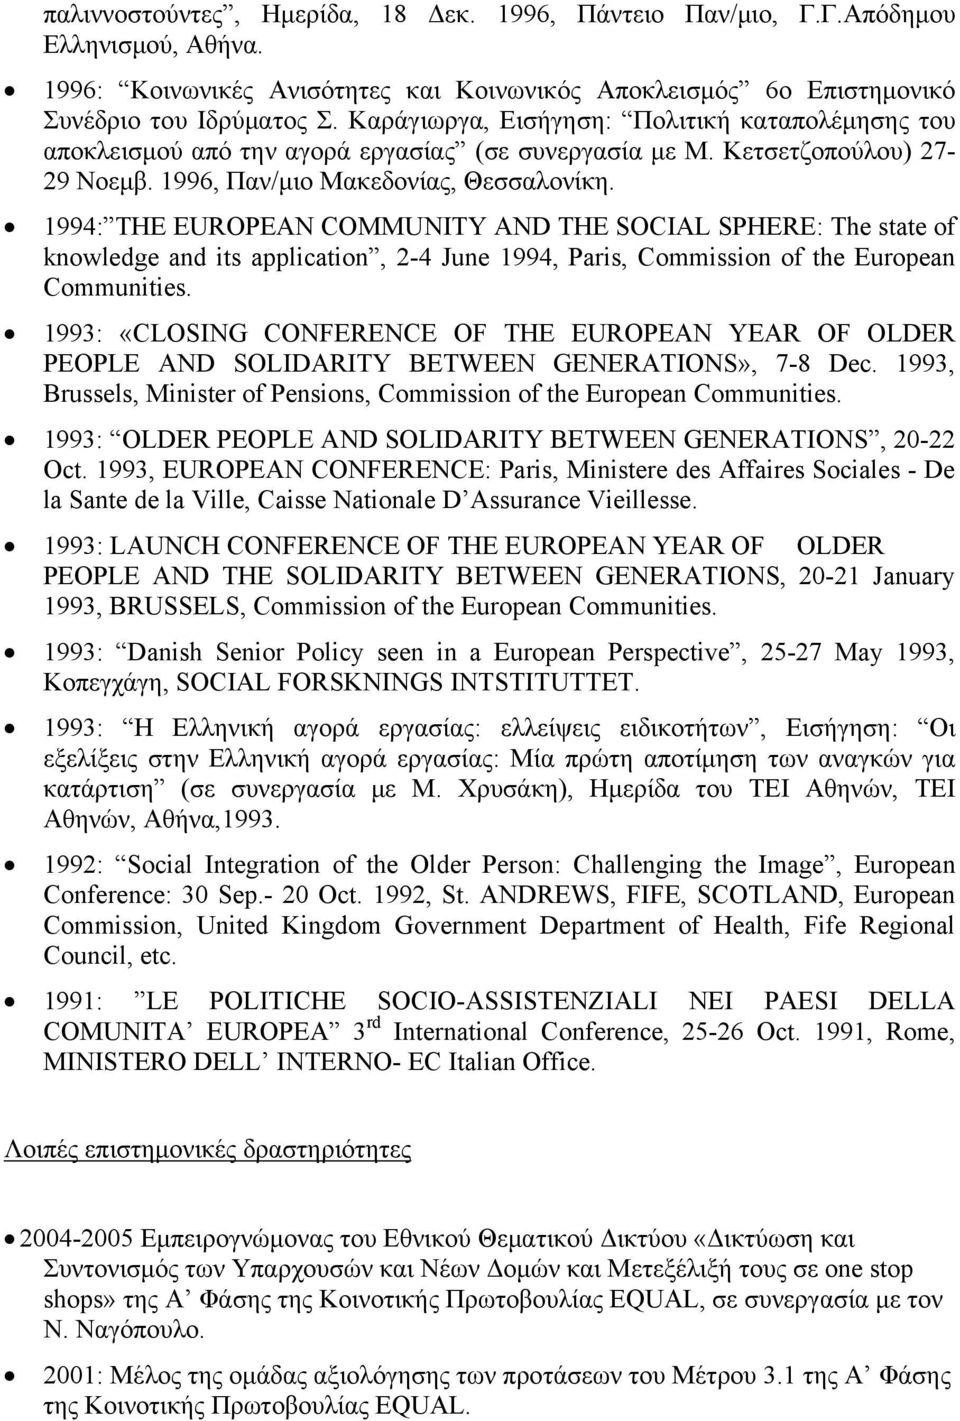 1994: THE EUROPEAN COMMUNITY AND THE SOCIAL SPHERE: The state of knowledge and its application, 2-4 June 1994, Paris, Commission of the European Communities.